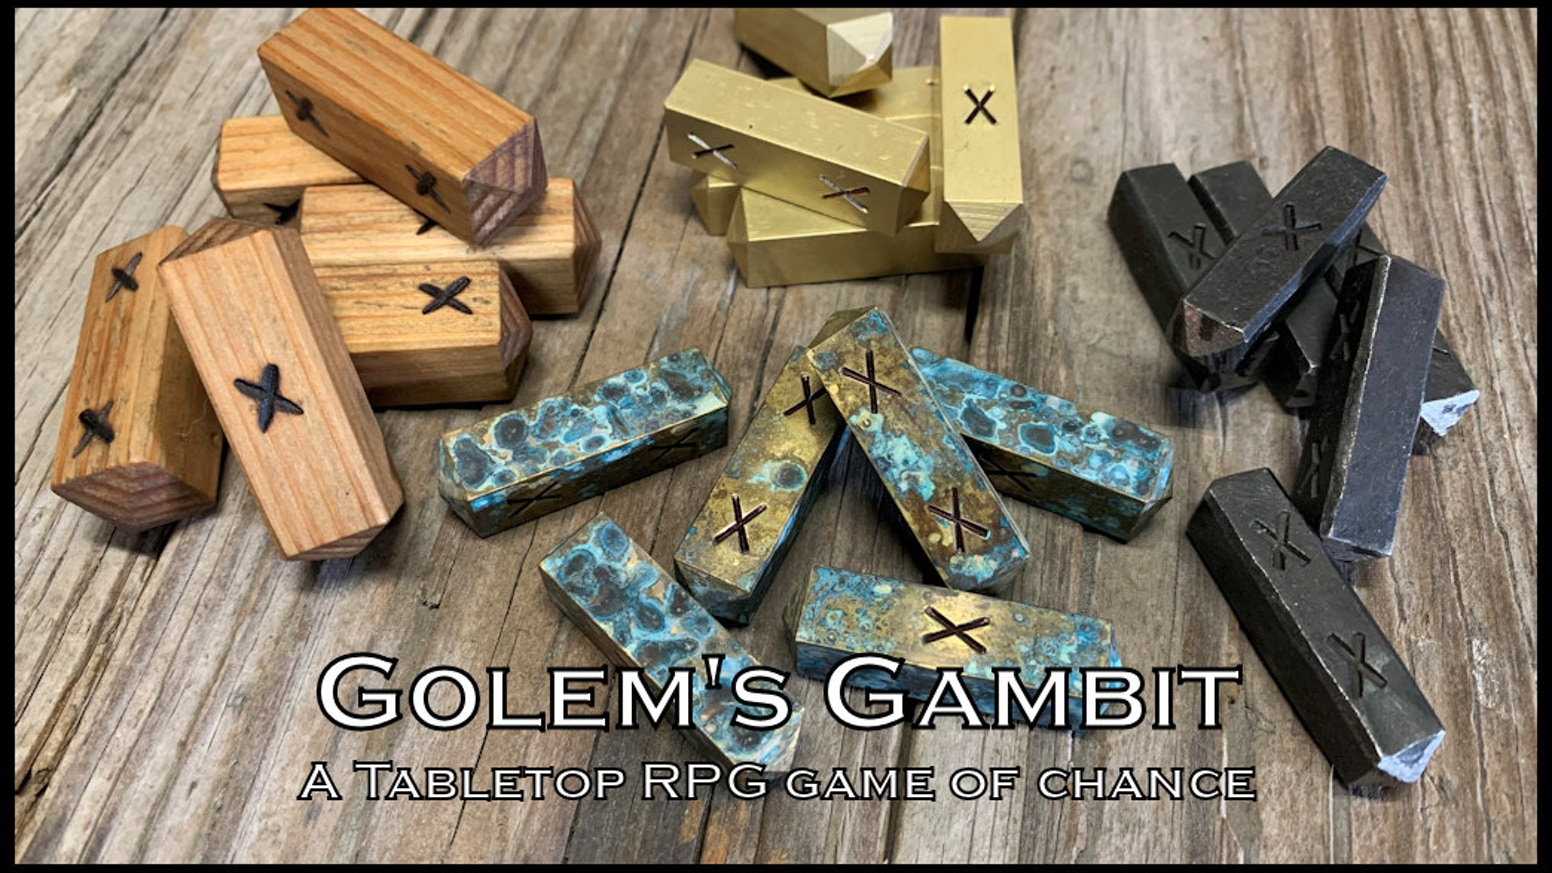 Golem's Gambit is a fantasy tavern game featuring hand crafted wood, iron, and brass playing pieces.